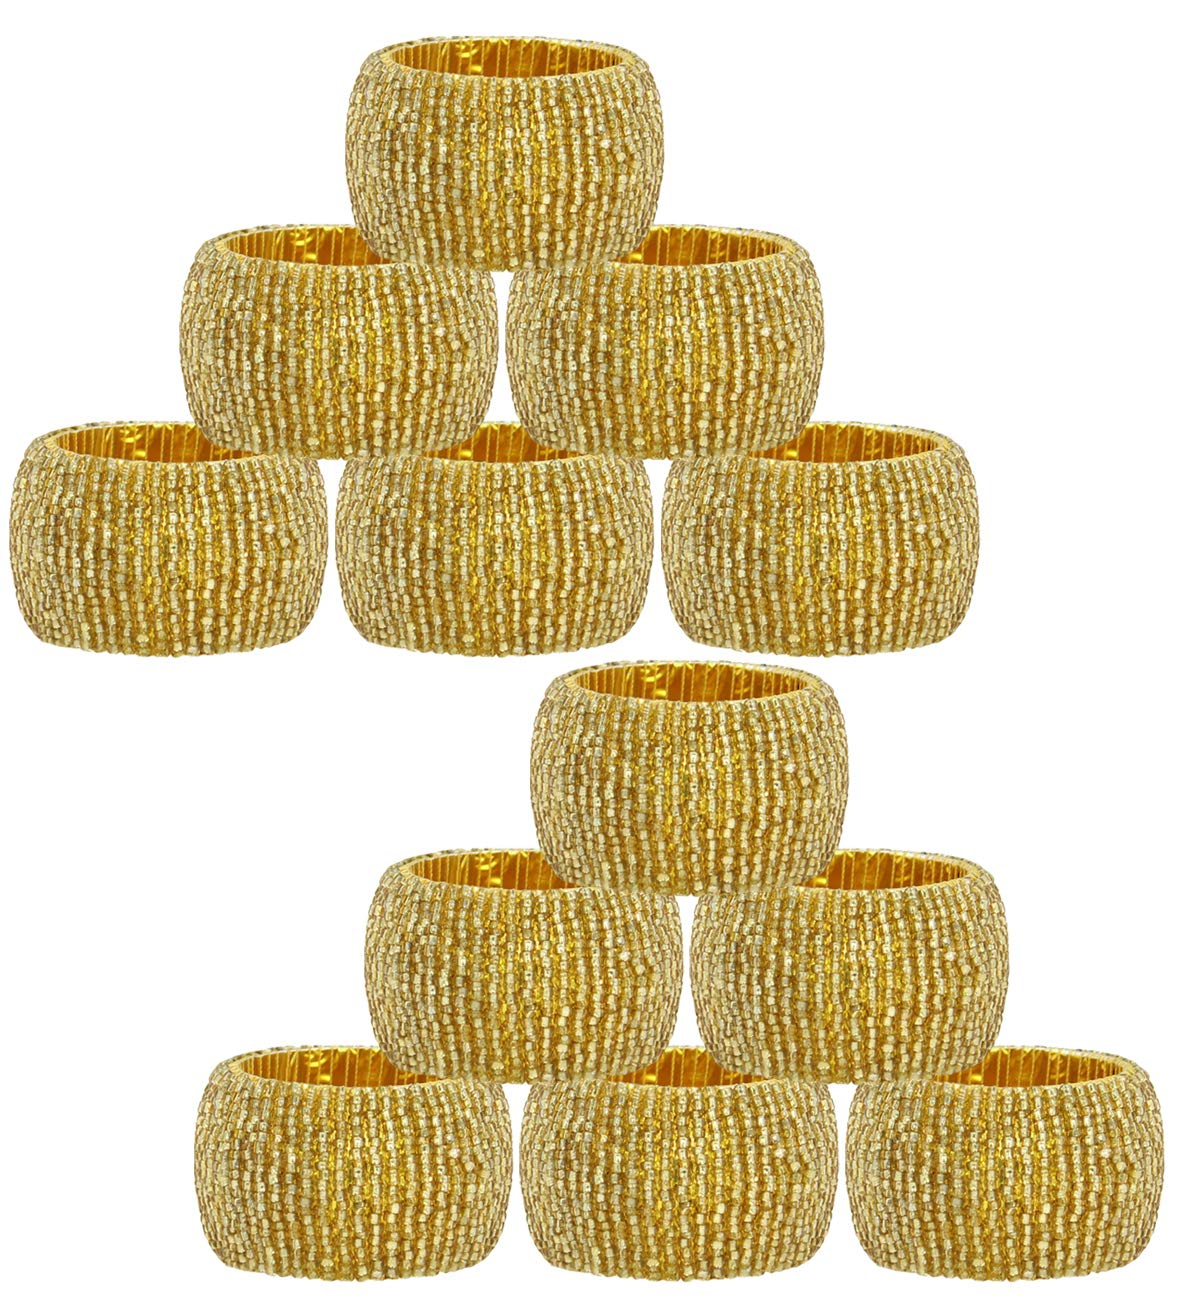 Cotton Craft Hand Made by skilled artisans A beautiful complement to your dinner table d/écor Gold 12 Pack Beaded Napkin Ring Set